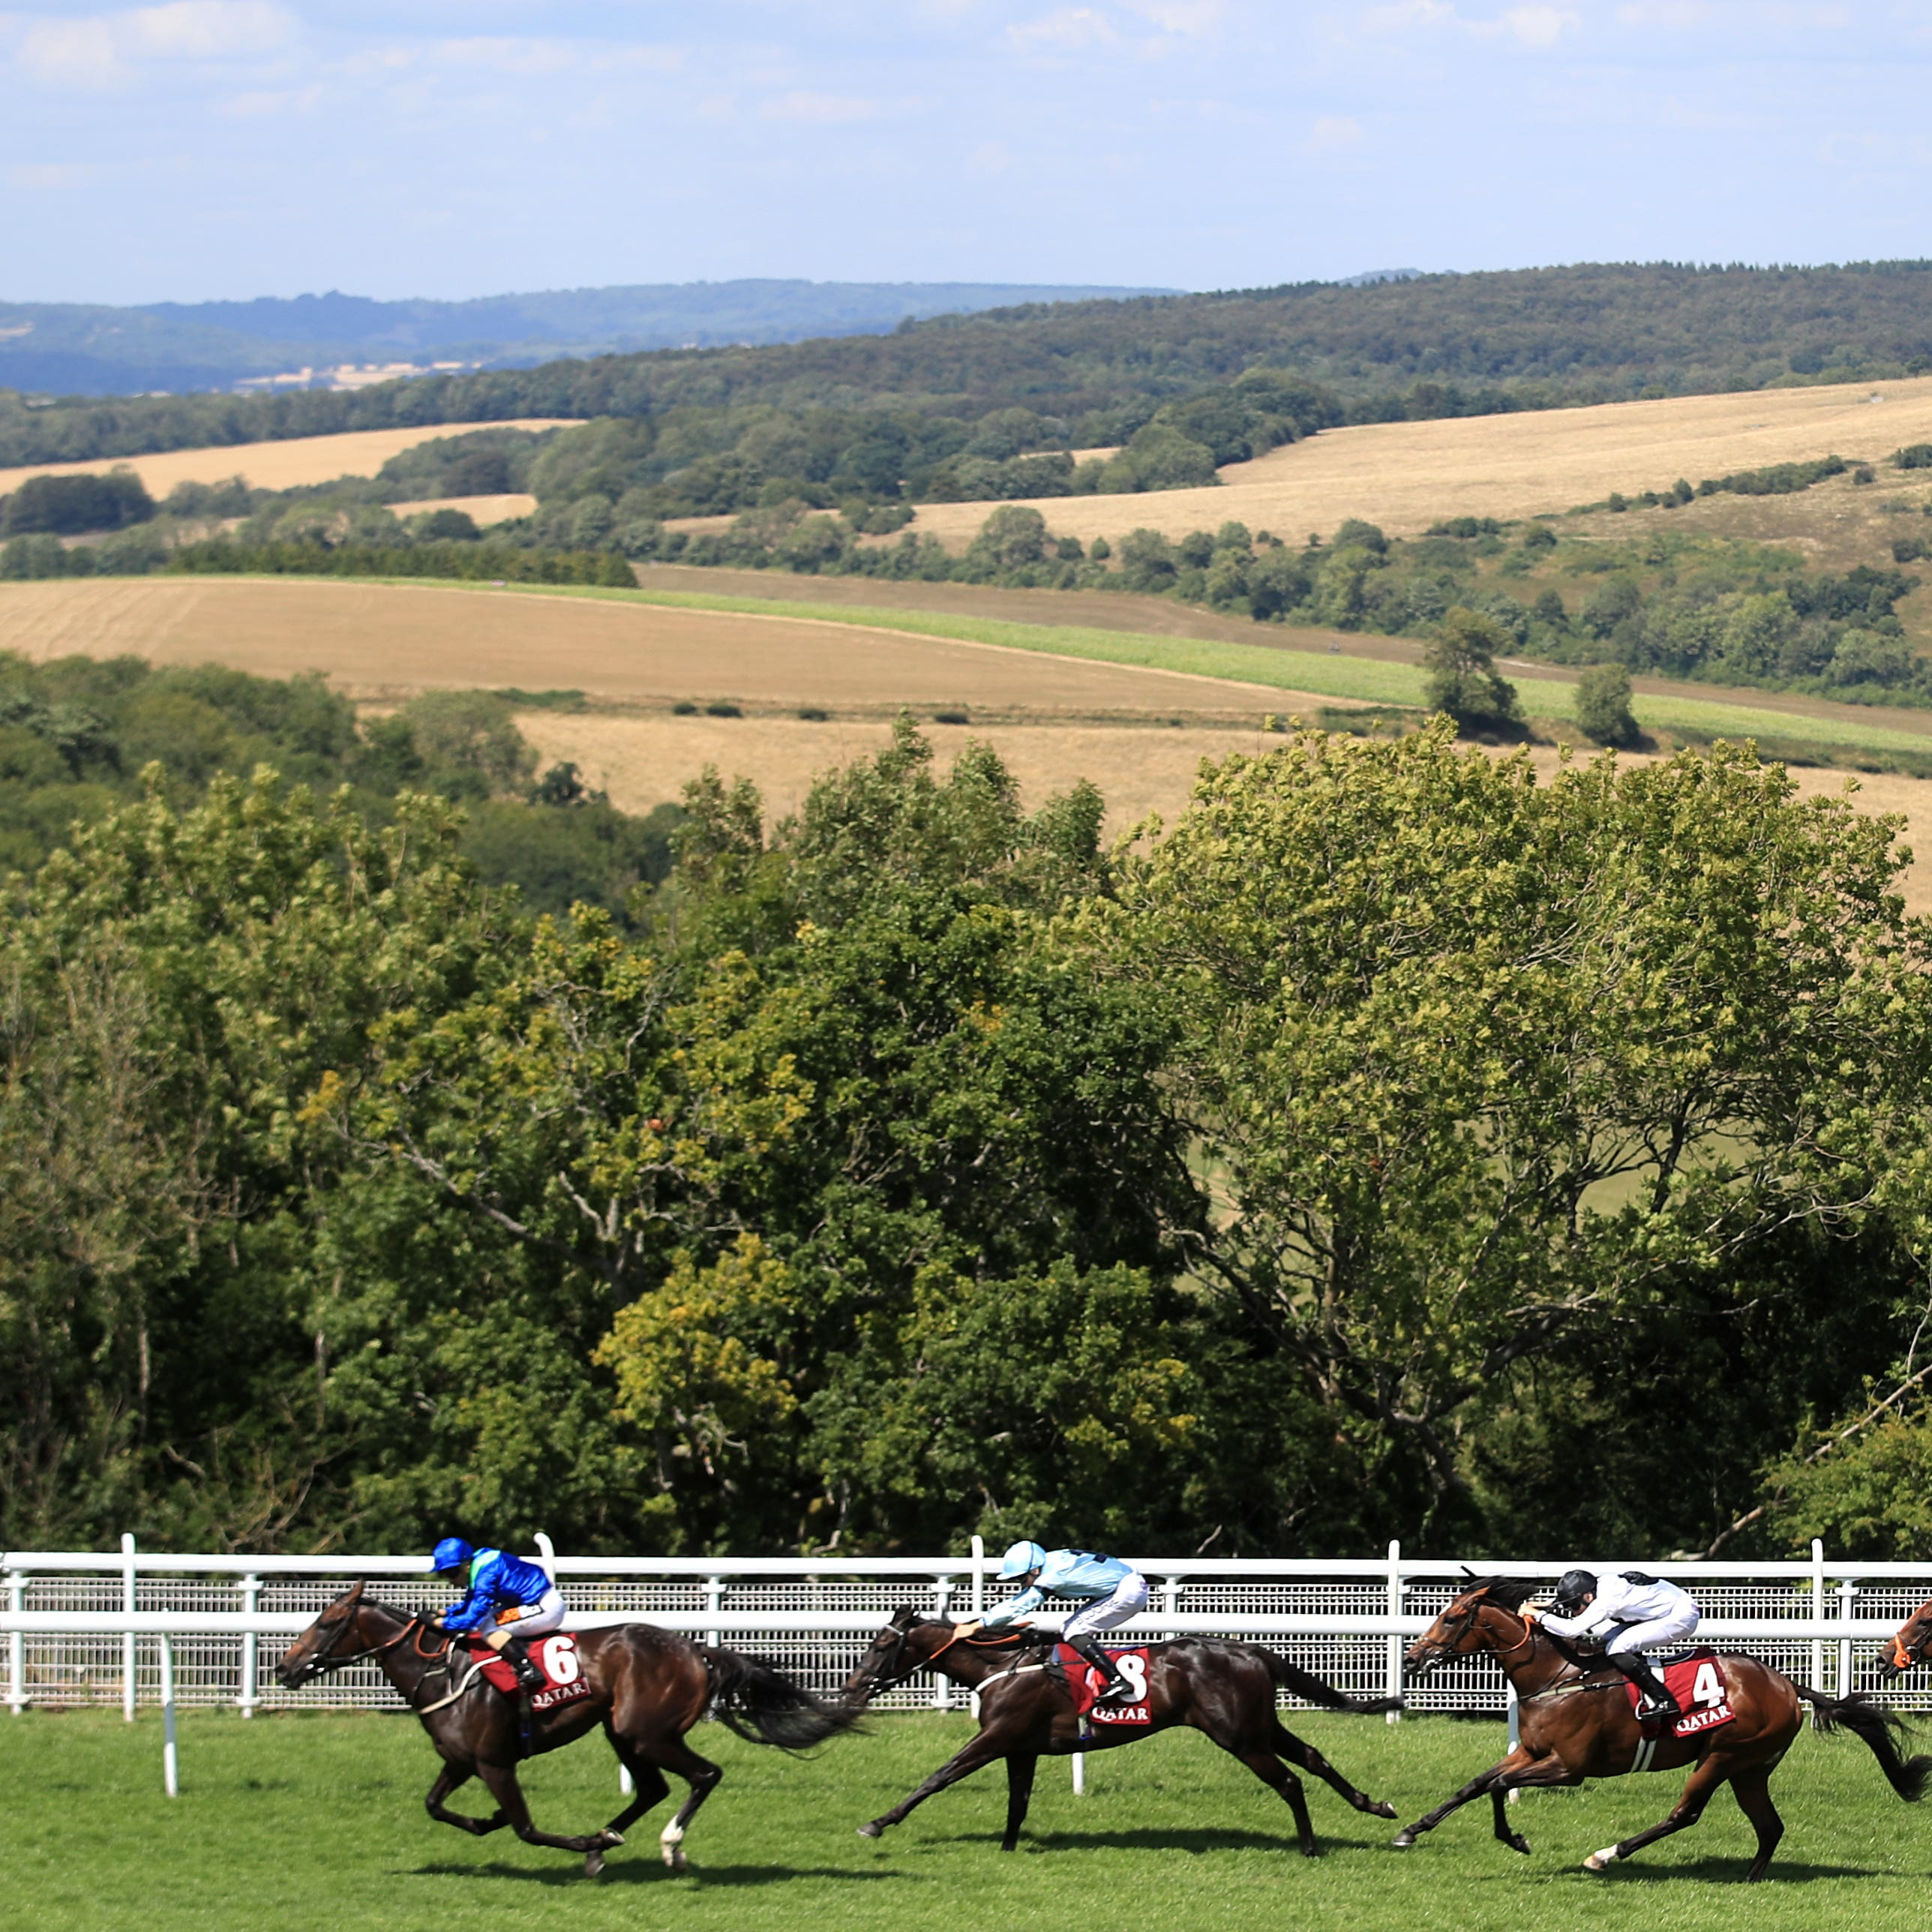 Connections of Dark Vision are hoping he can return to the level of form he showed at Goodwood